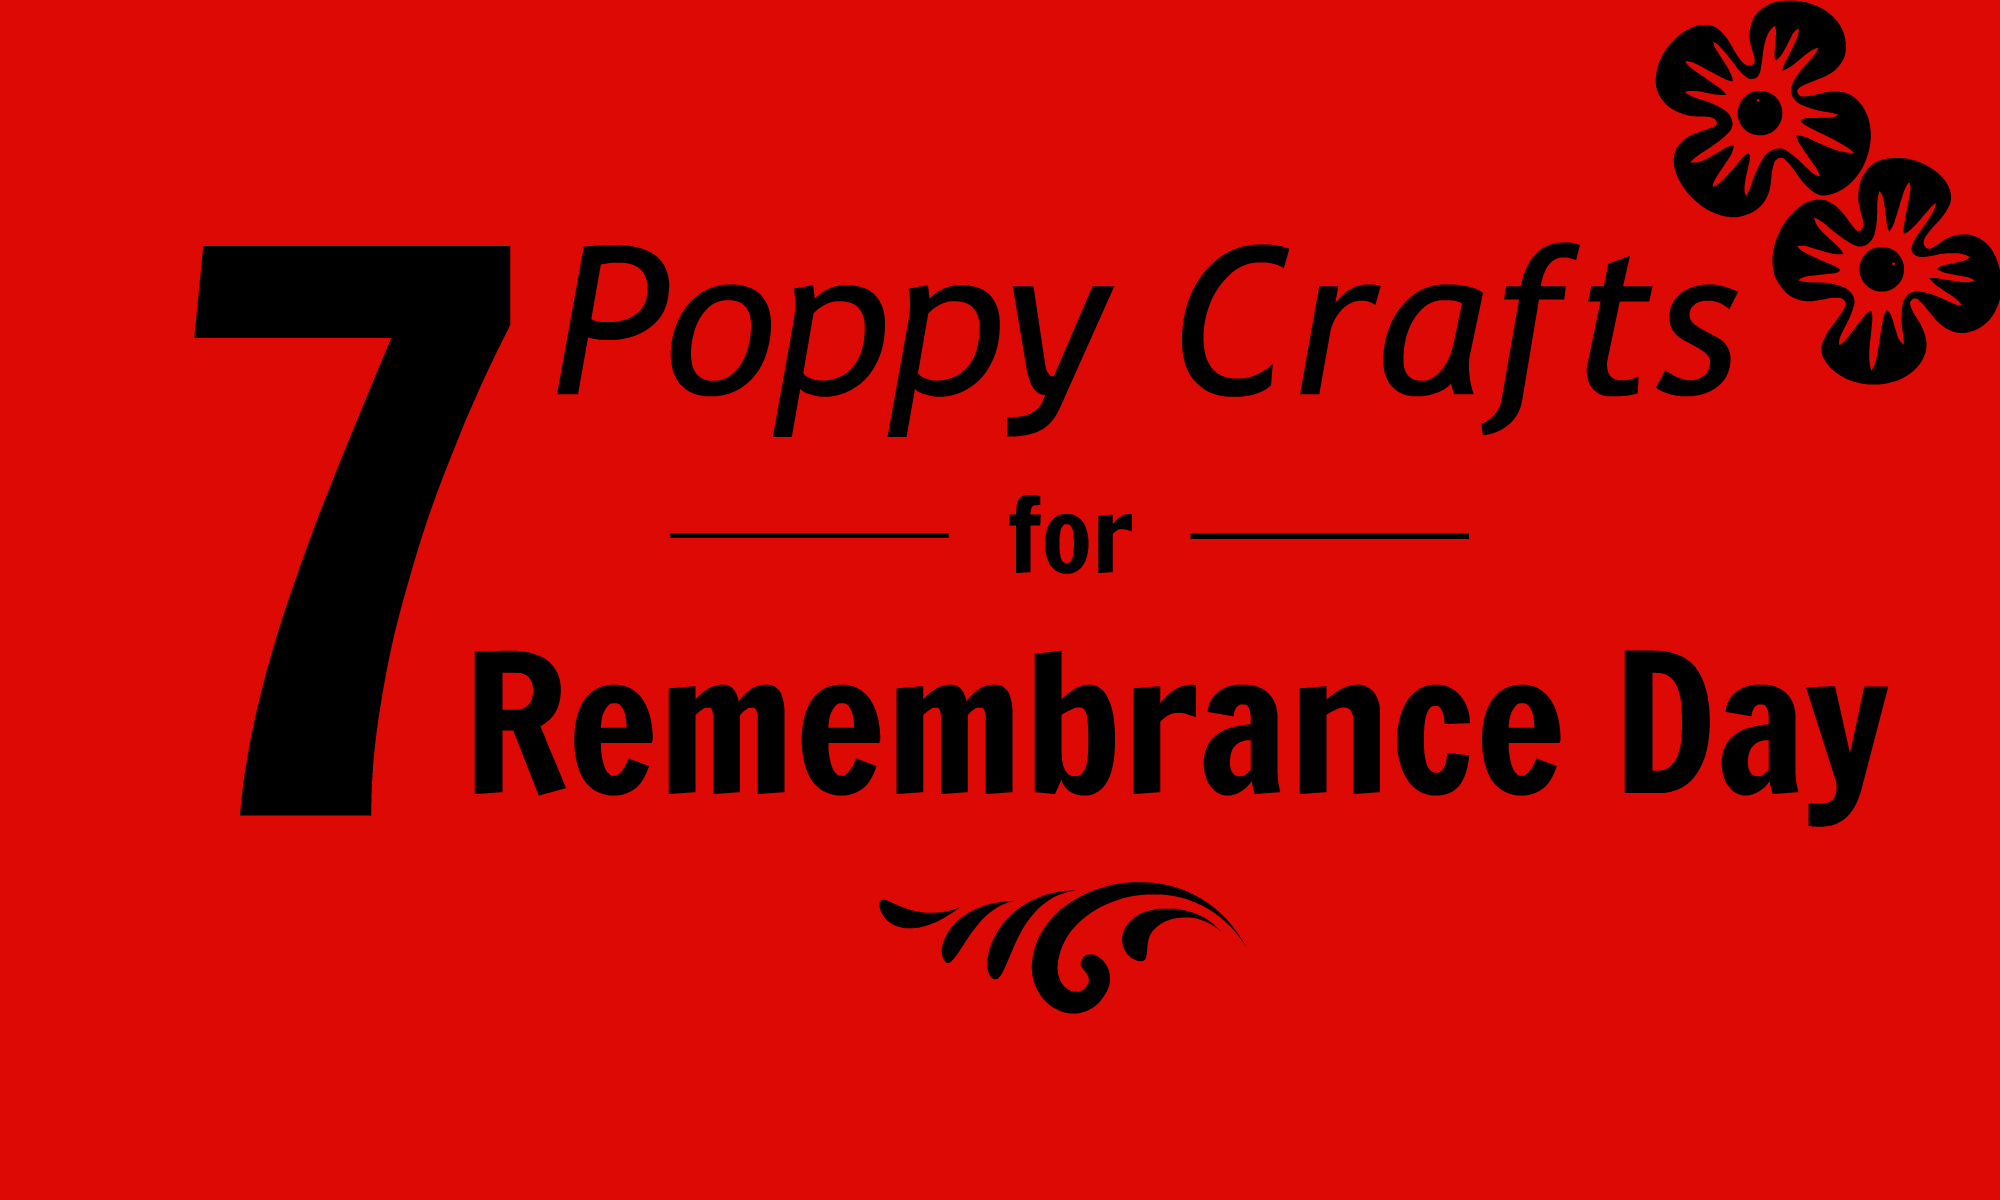 7 Poppy Crafts for Remembrance Day